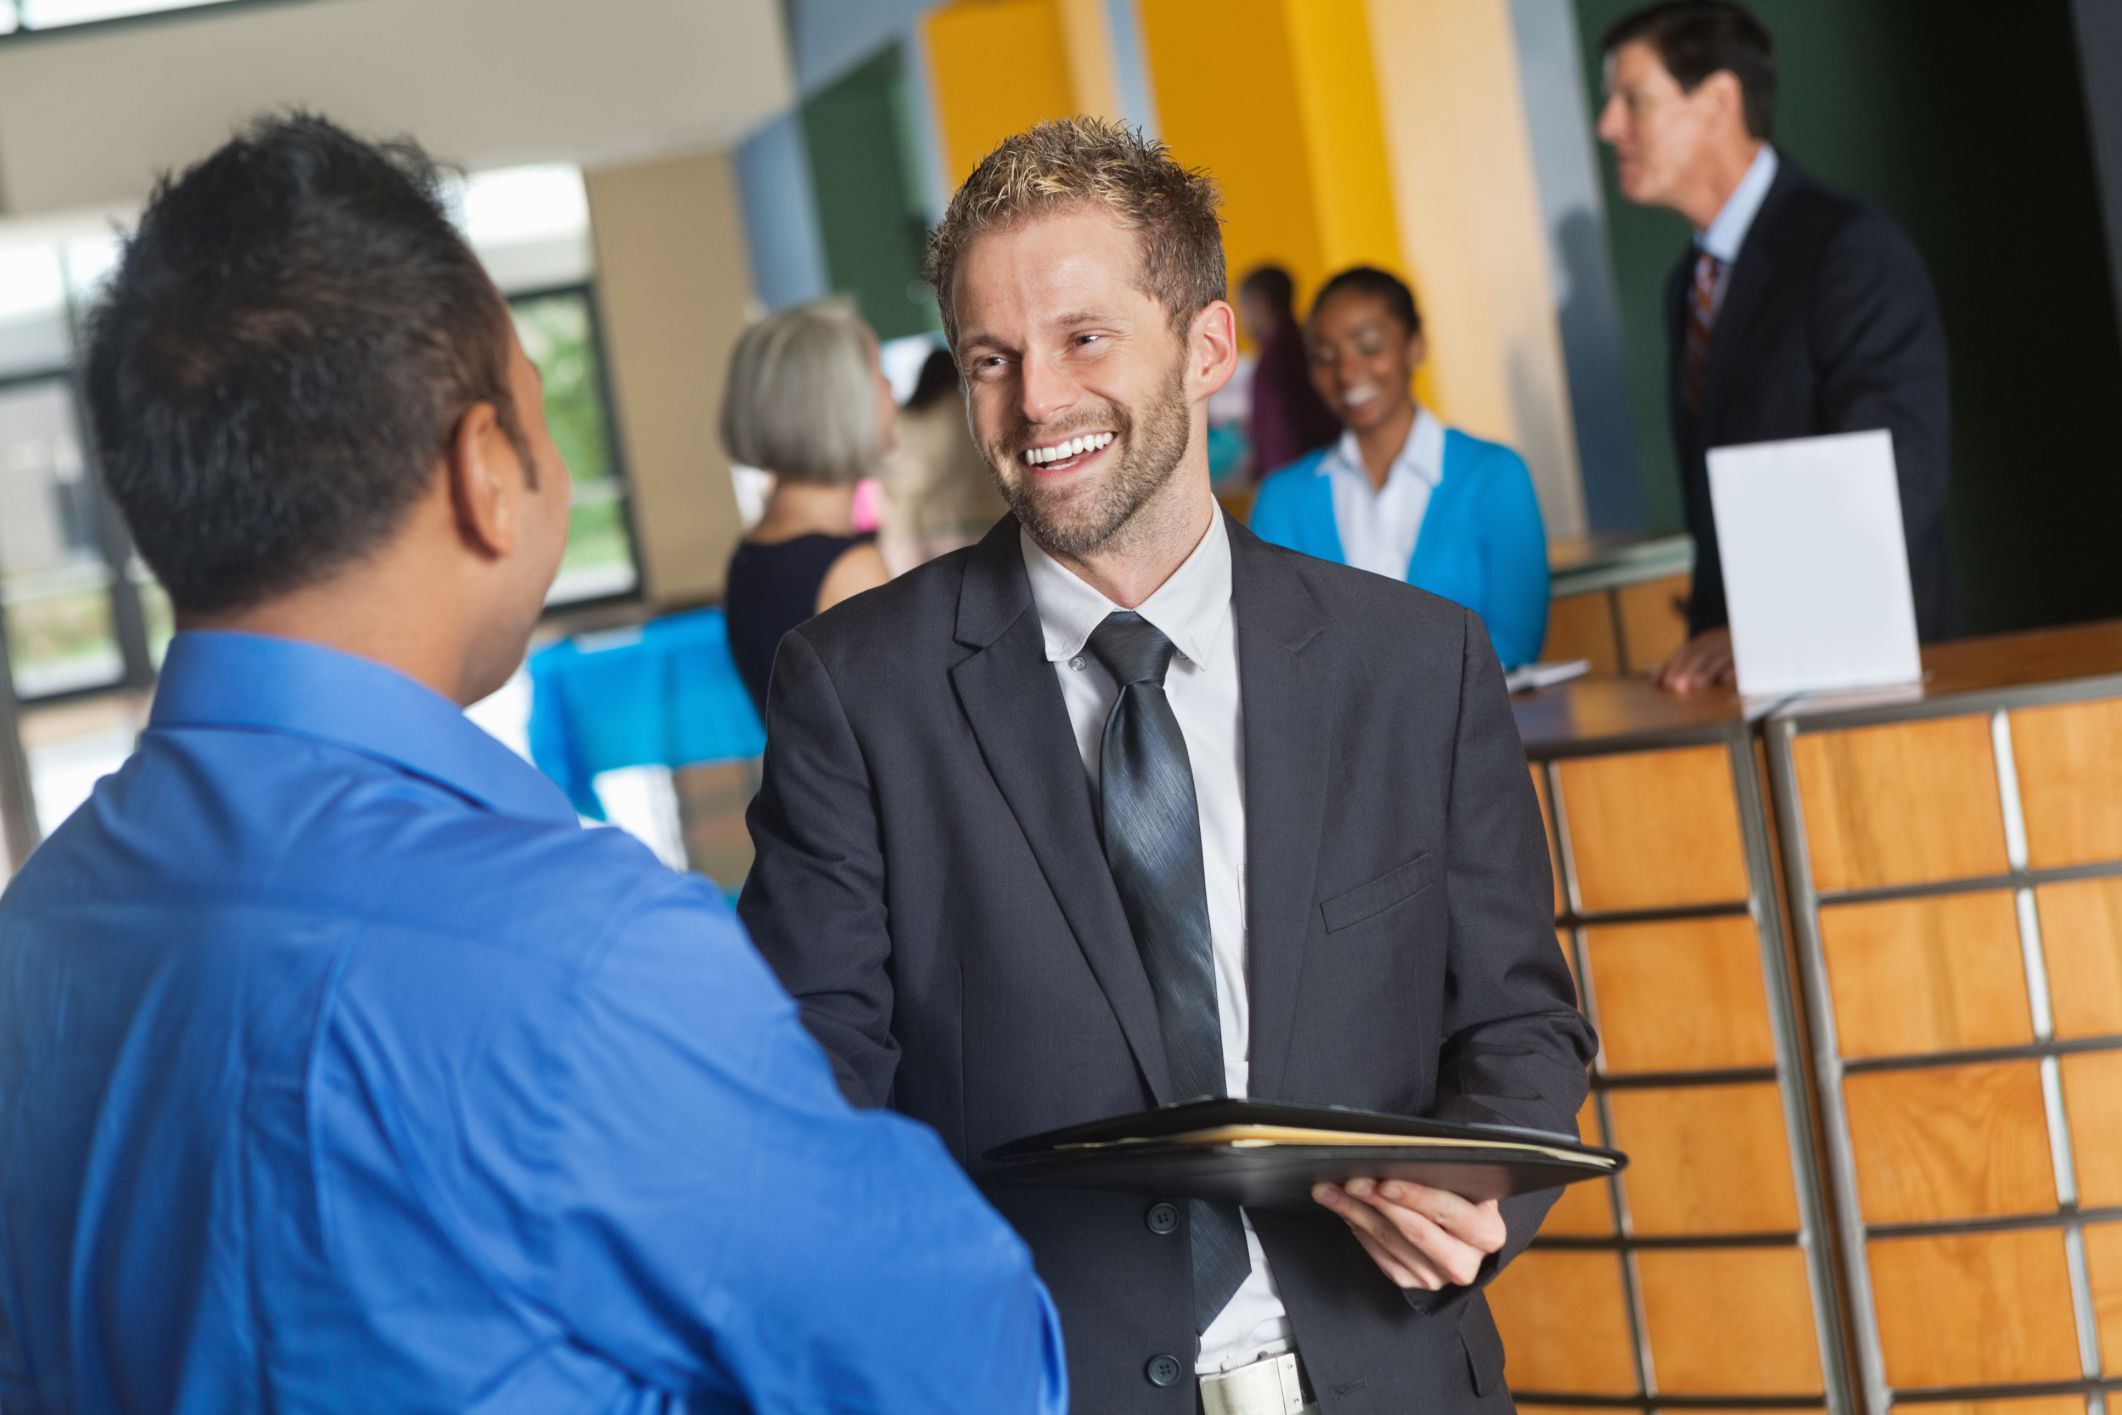 How to Introduce Yourself at a Job Fair